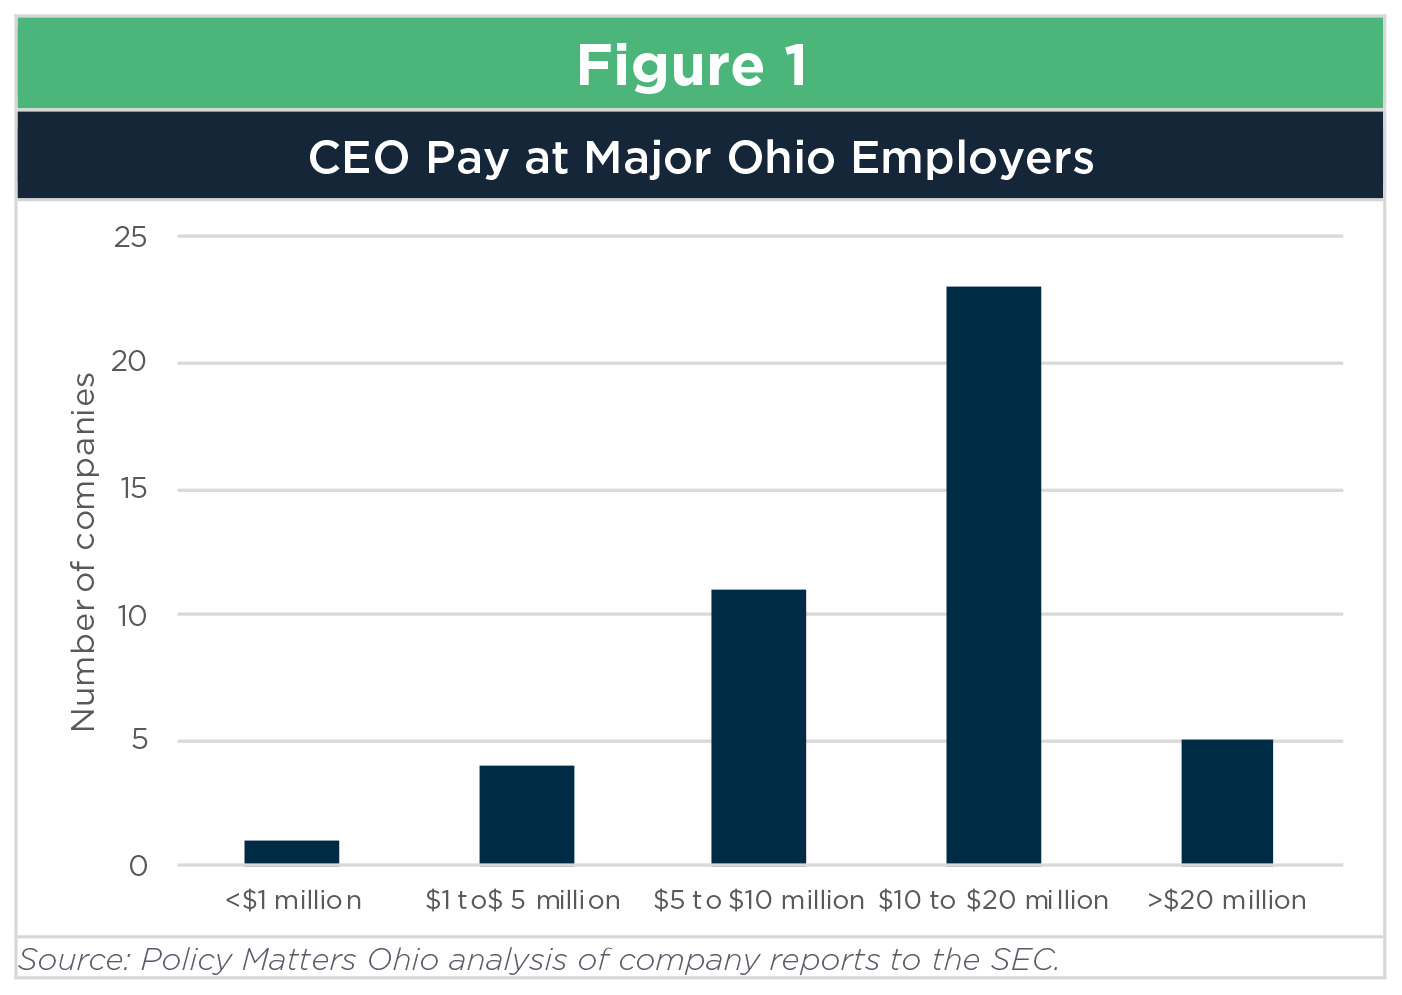 Ceo pay research paper